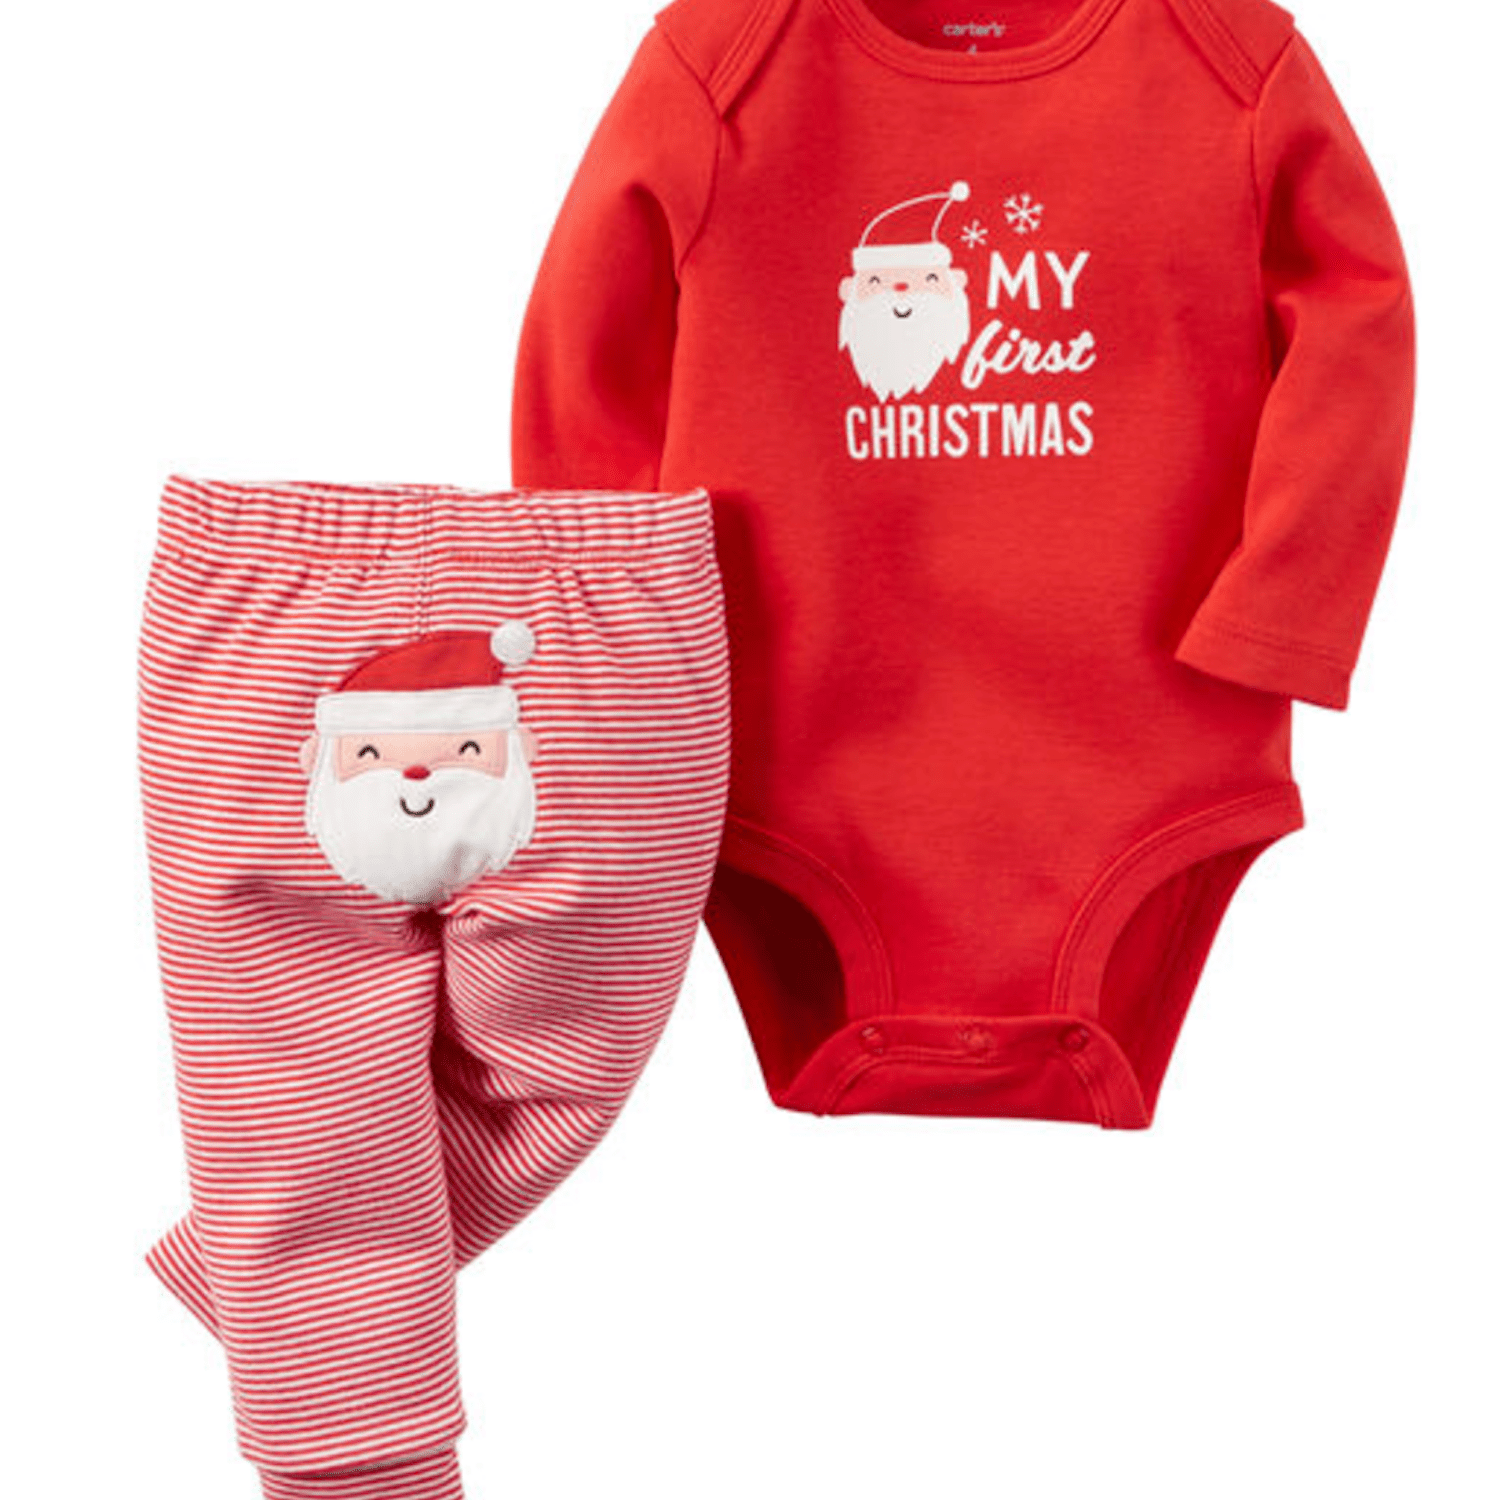 Festive Threads Unisex Baby Have A Jolly Jolly Christmas T-Shirt Romper